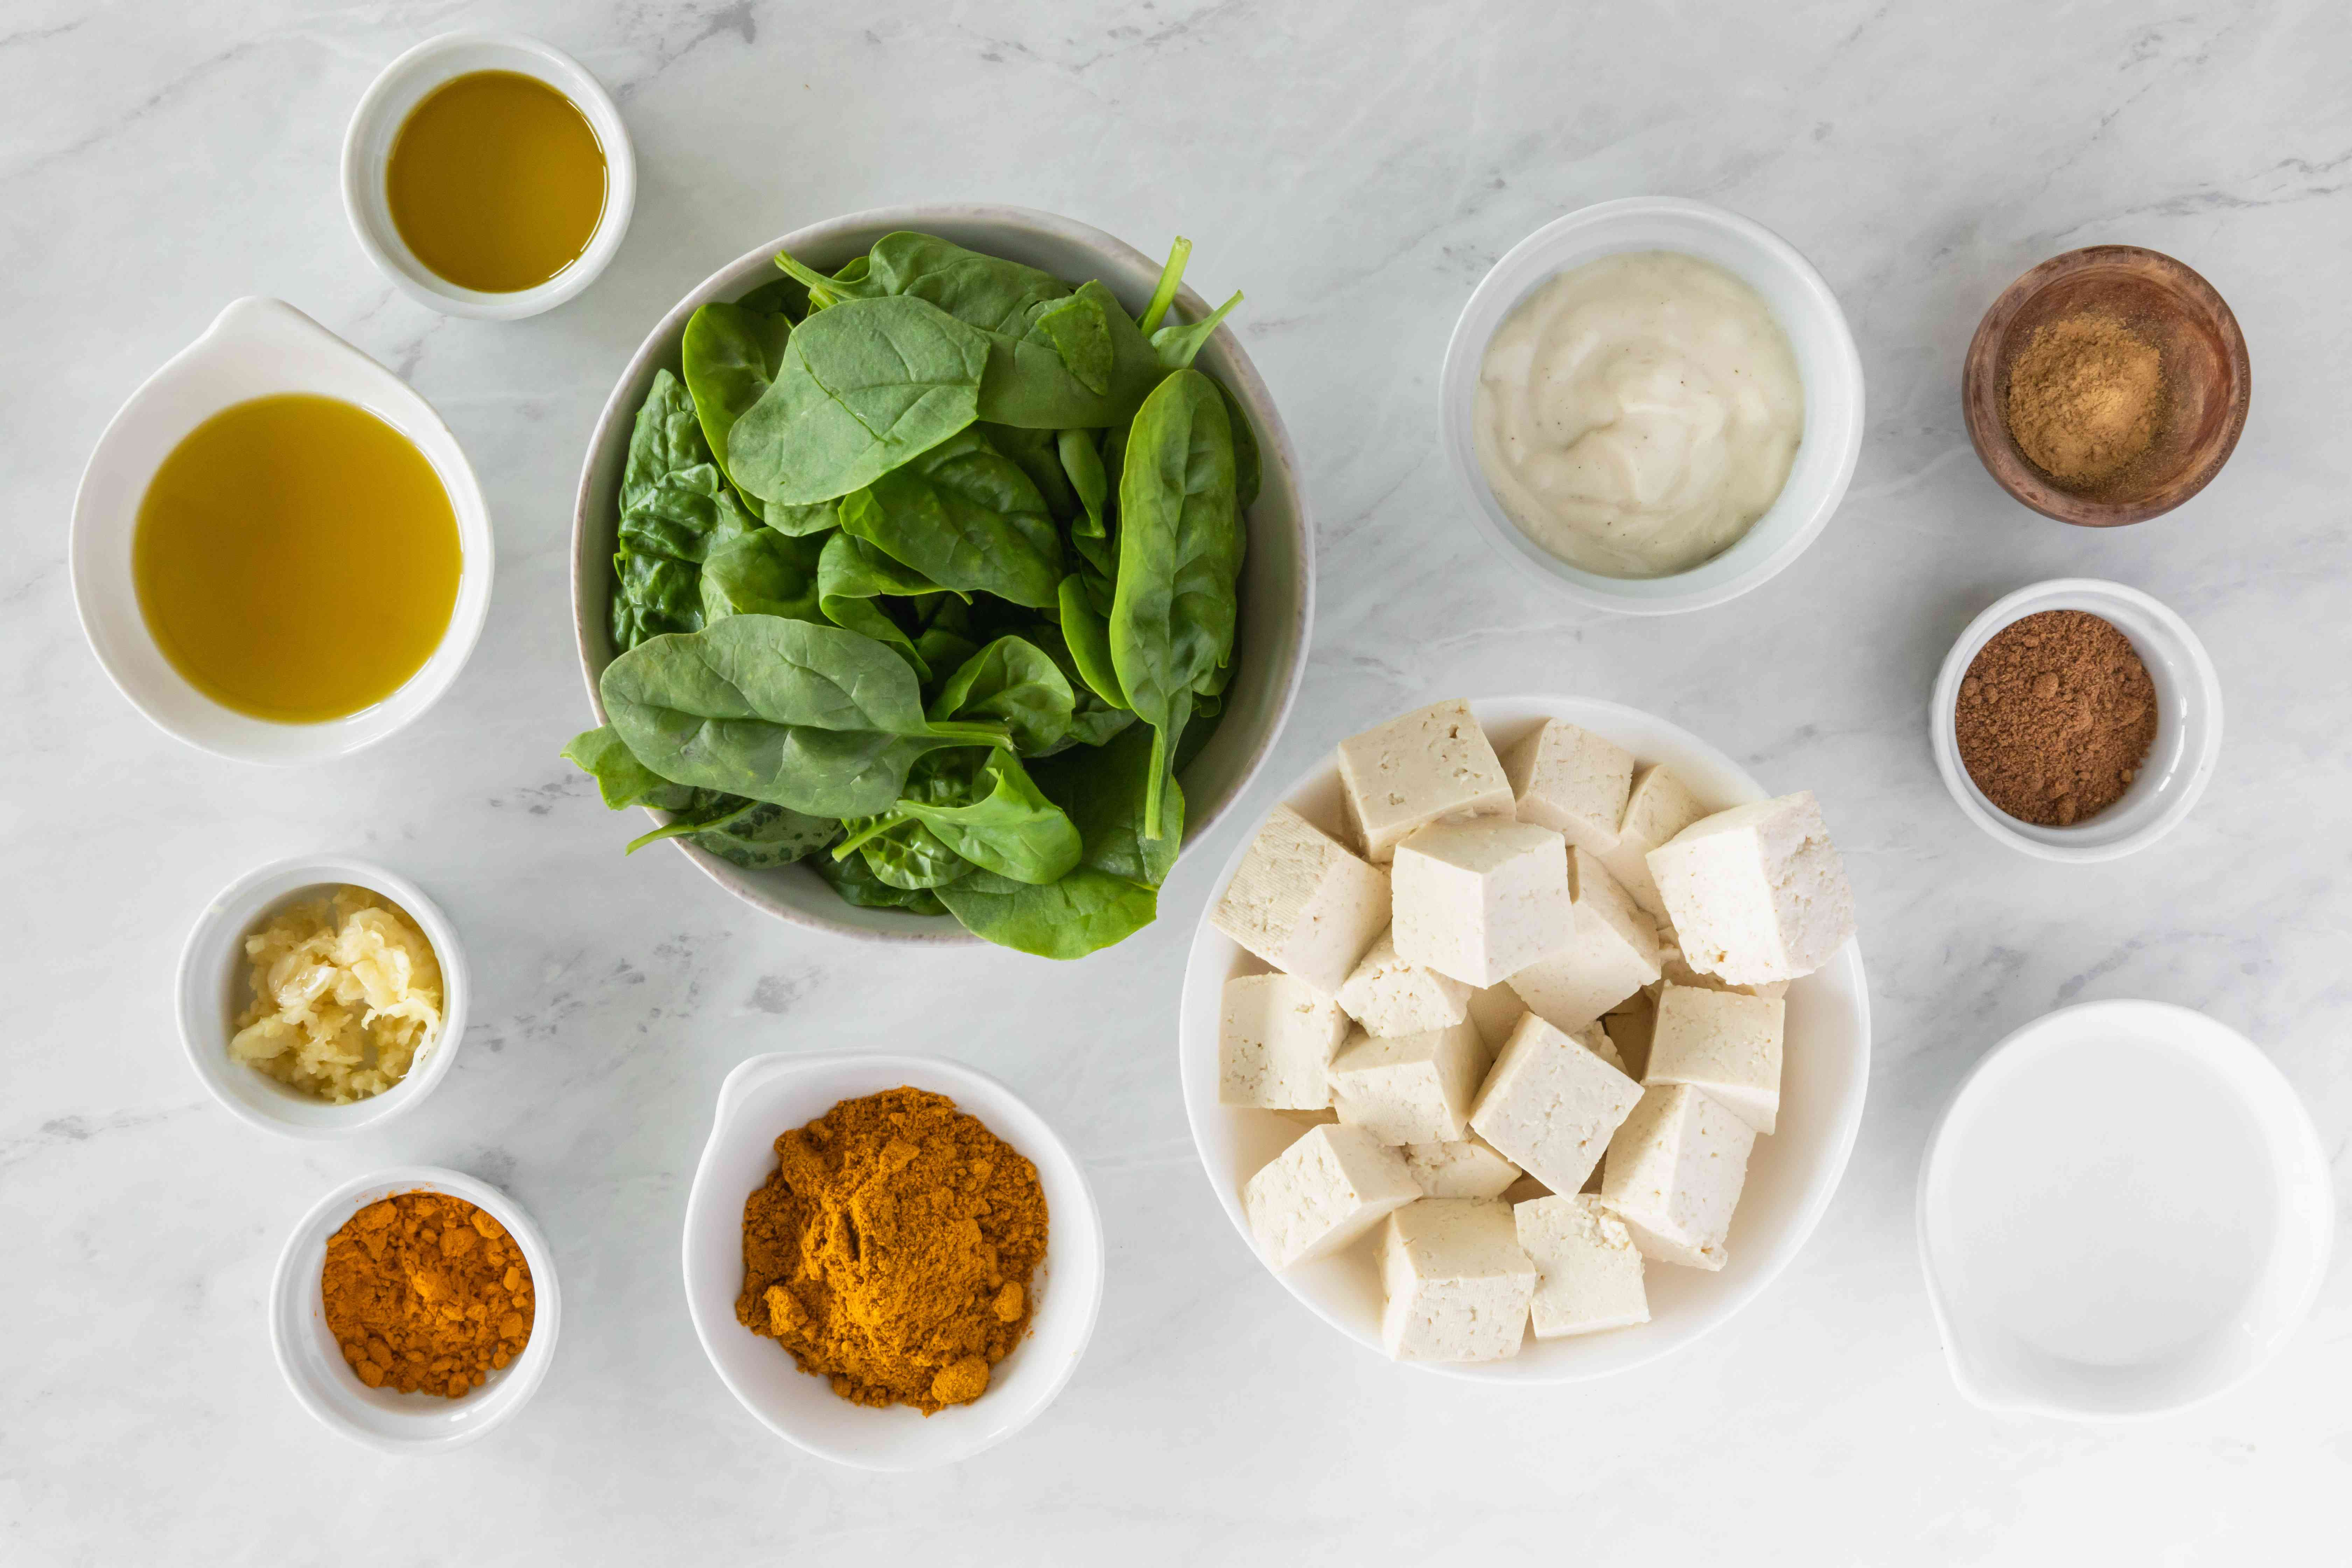 Ingredients for Indian palak paneer spinach and tofu